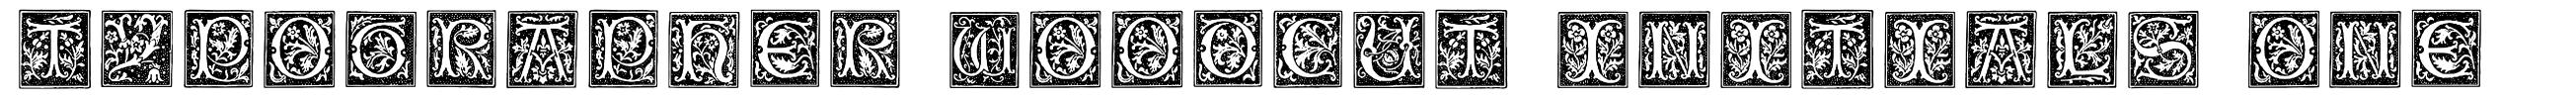 Typographer Woodcut Initials One